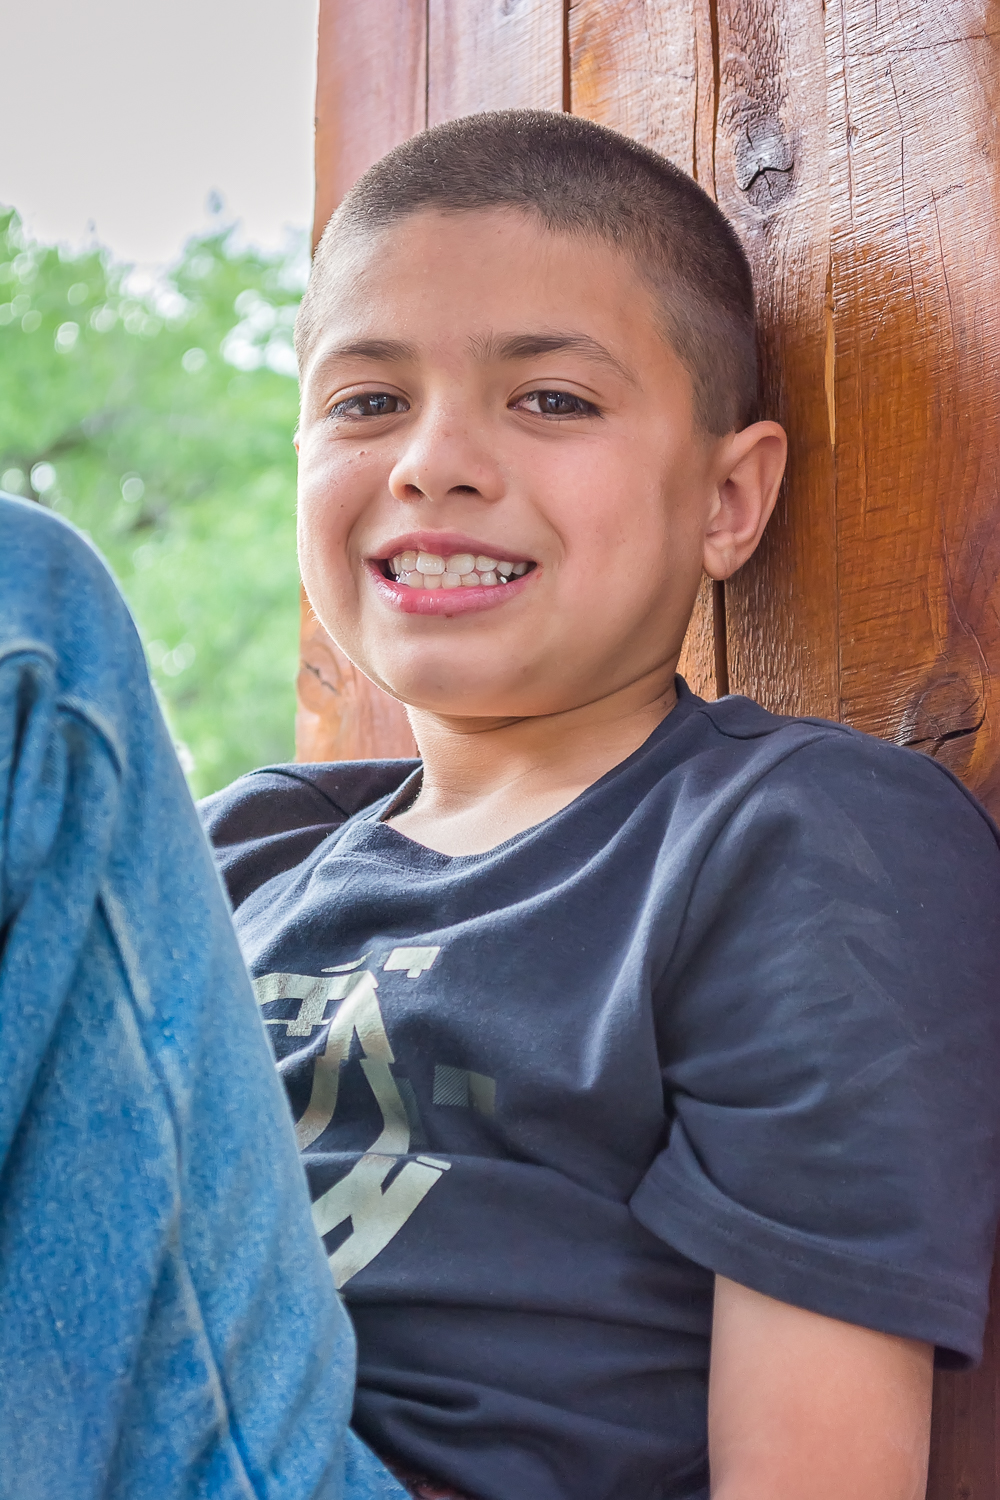 Boy Headshot, Boy Portrait, Outdoor Child Portrait, Childhood Photo, Family Portrait Session, Albuquerque Photographer